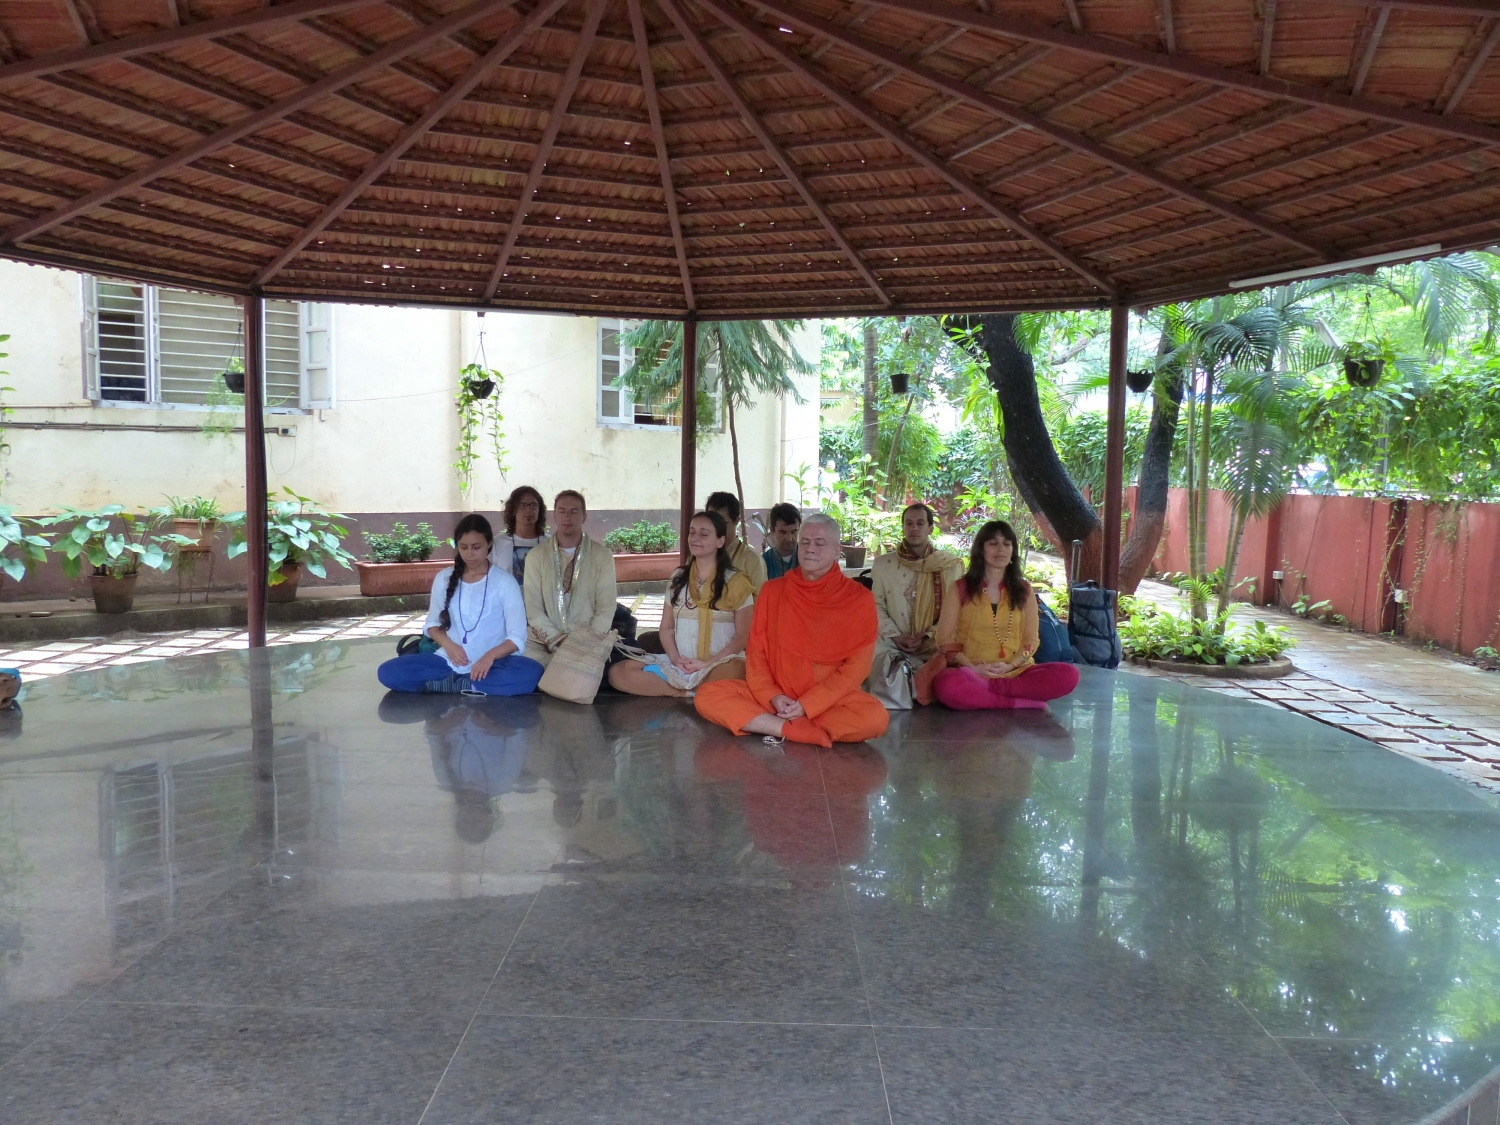 Meeting of H.H. Jagat Guru Amrta Sūryānanda Mahā Rāja with Smt. Hansaji Jayadeva Yogendra - The Yoga Institute of Santa Cruz, Mumbai, India - 2014, July